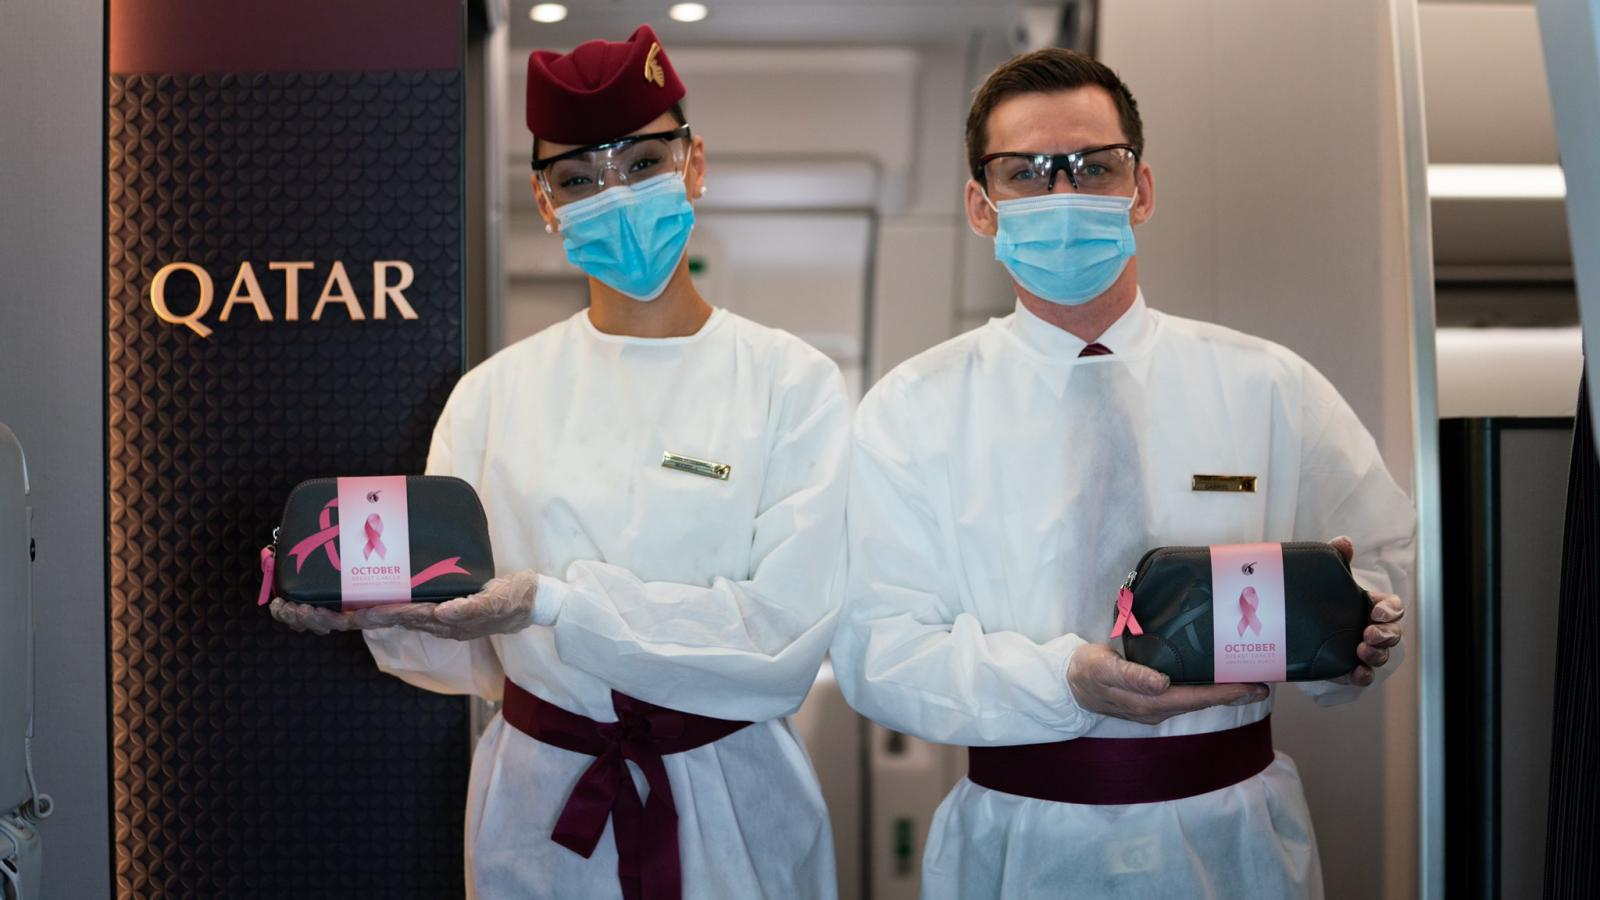 Qatar Airways marks Breast Cancer Awareness month with exclusive amenity kits and 'Think Pink' onboard menu